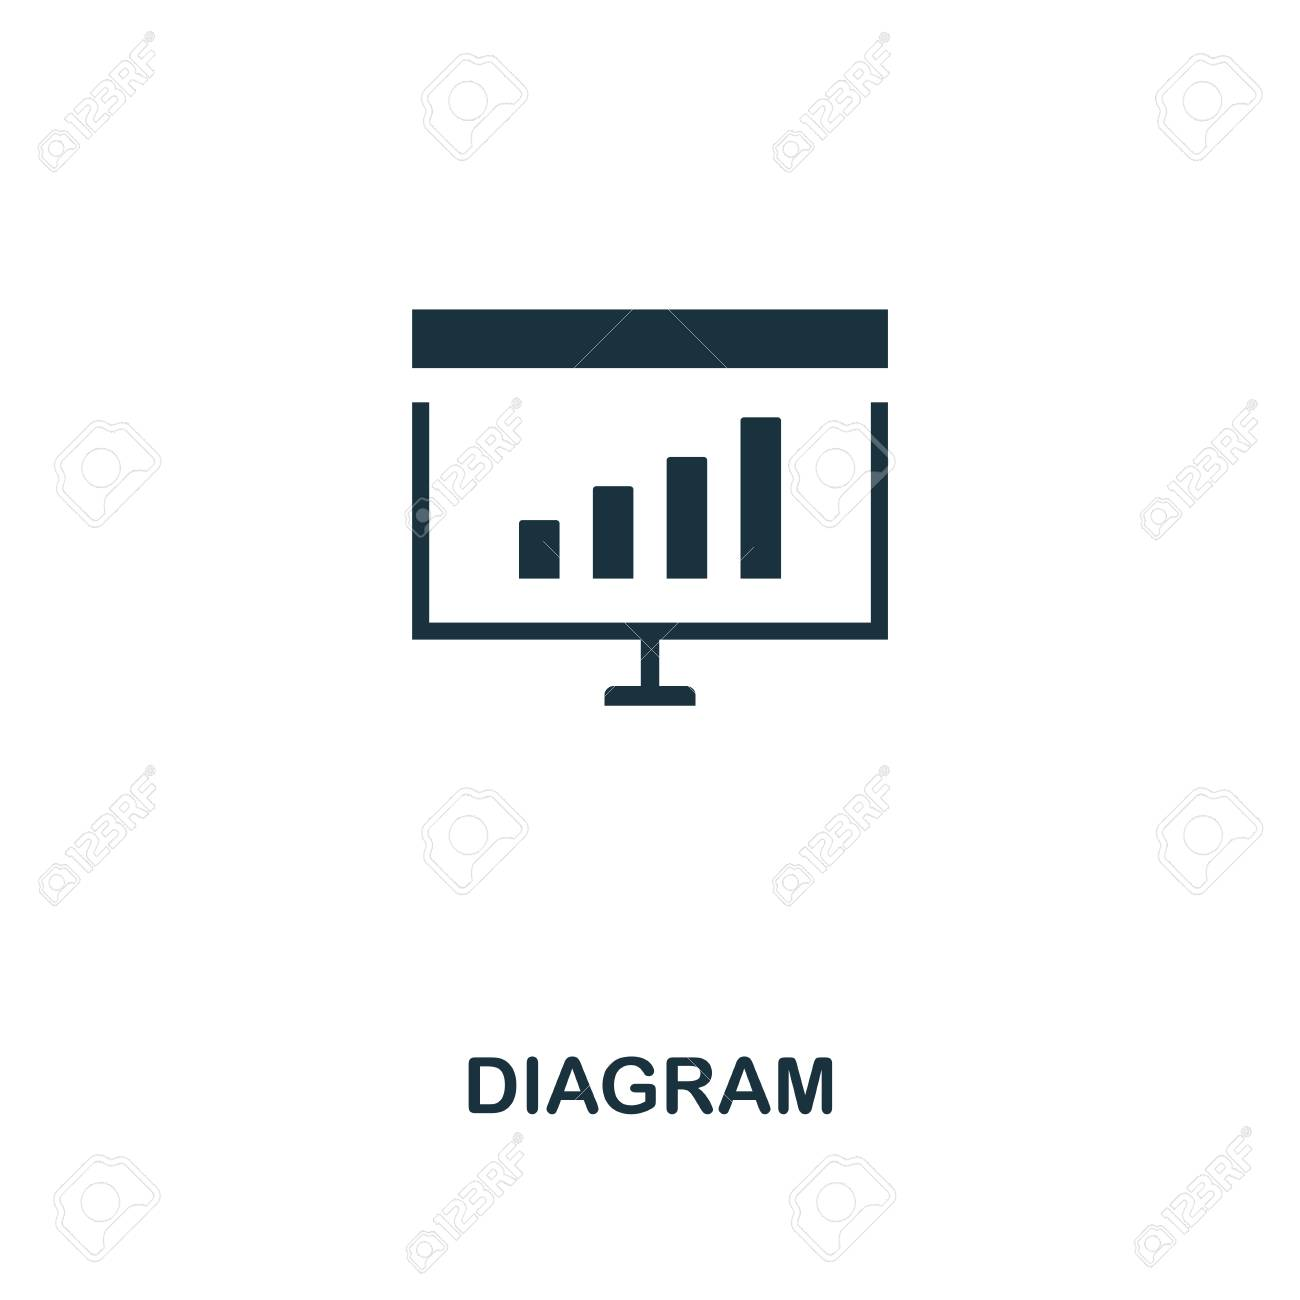 hight resolution of diagram icon for including logo branding packaging shirt web responsive